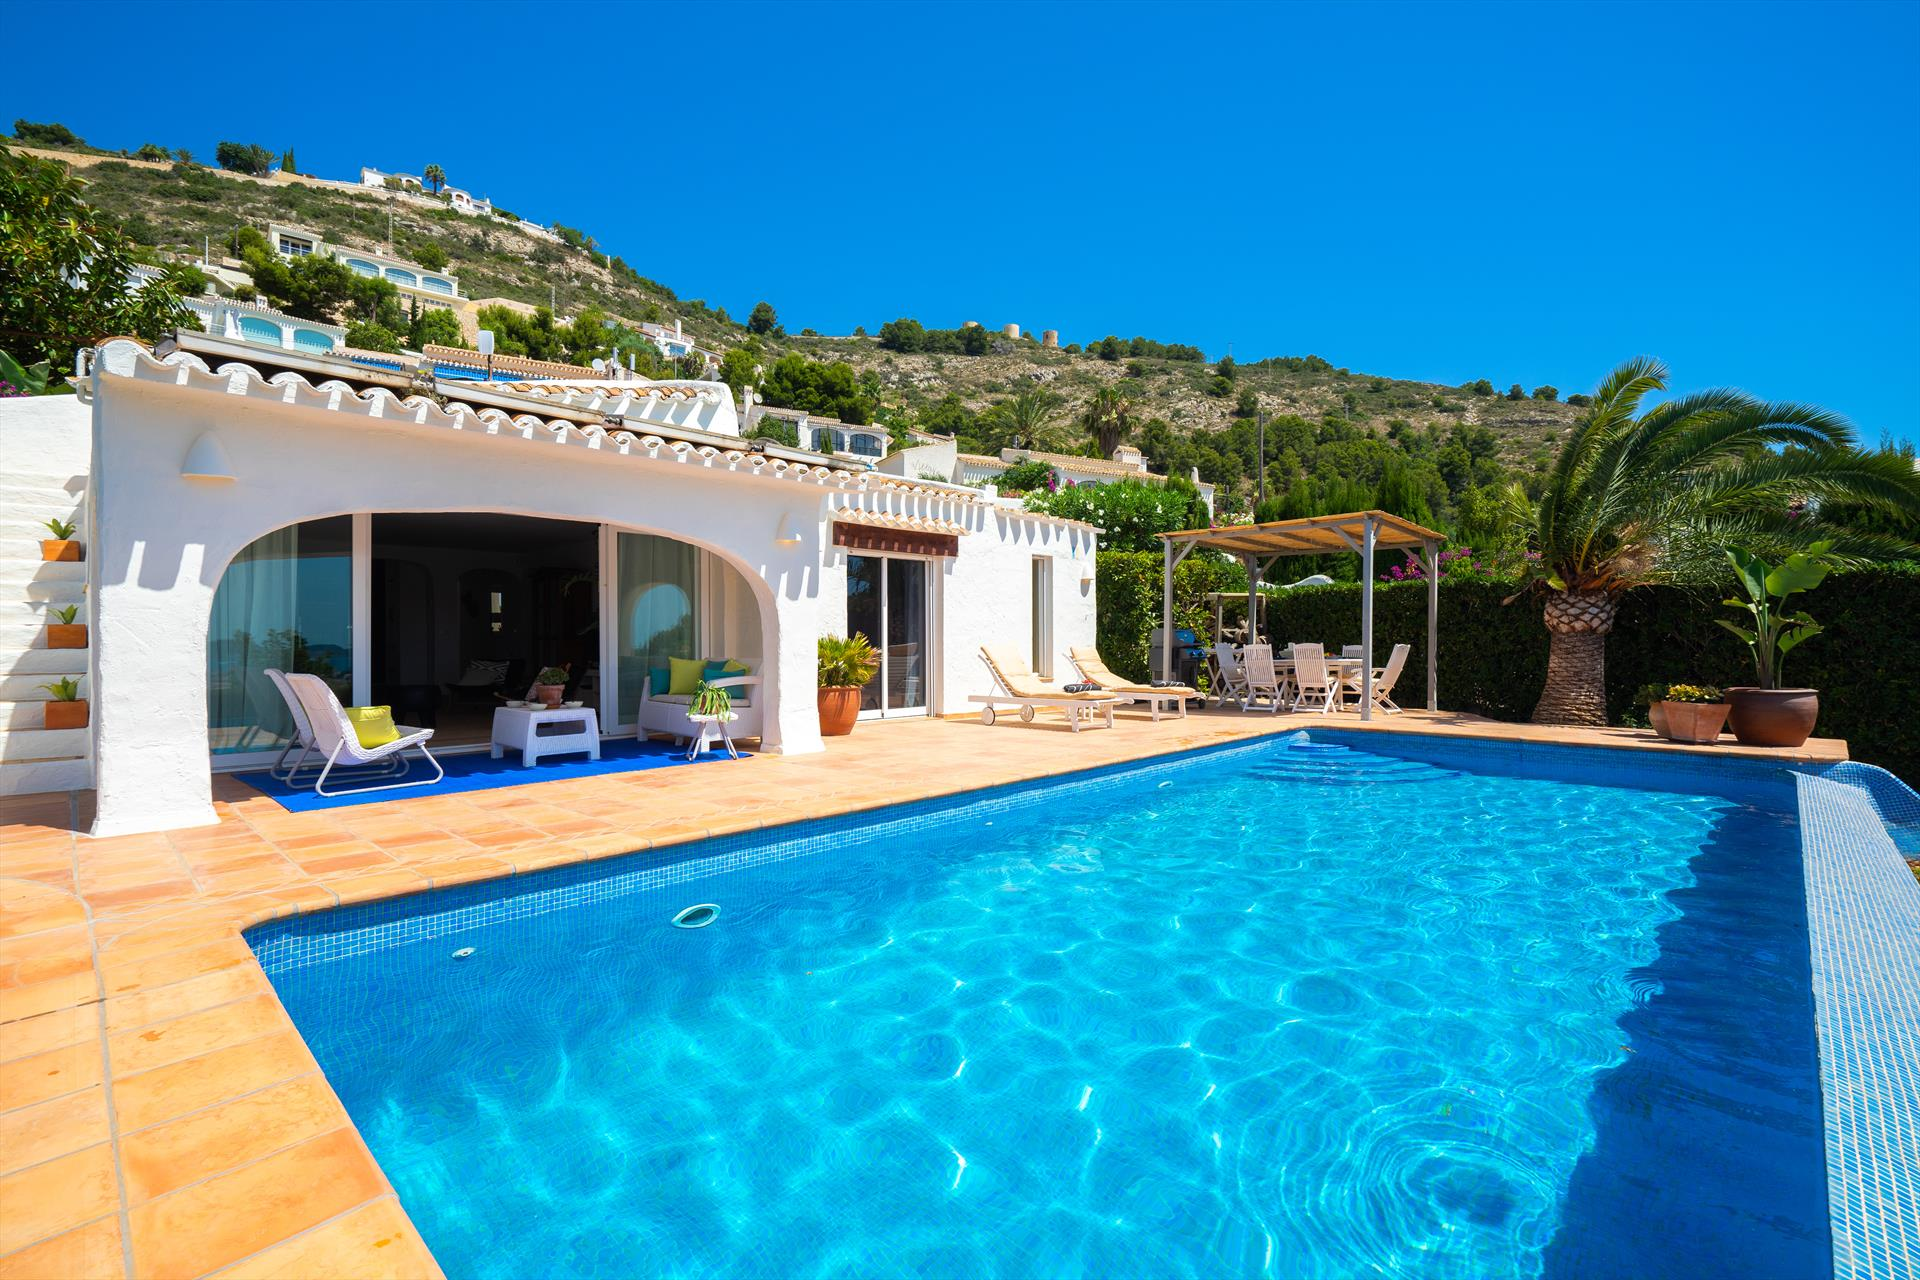 Nalu 4 pax, Rustic and romantic villa in Javea, on the Costa Blanca, Spain  with private pool for 4 persons...